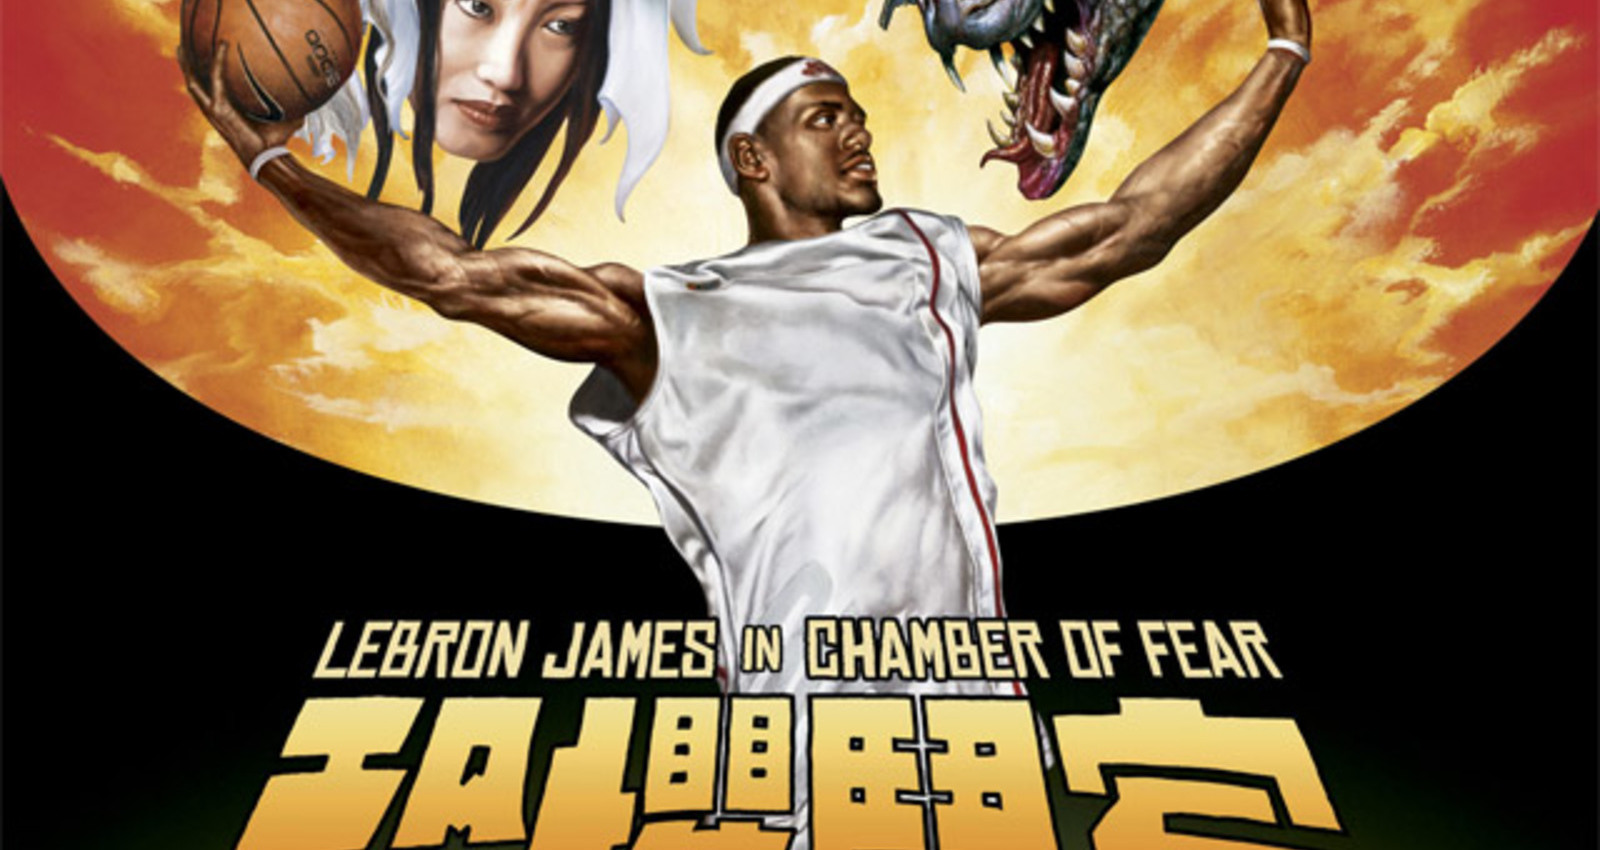 Nike Basketball: Chamber of Fear